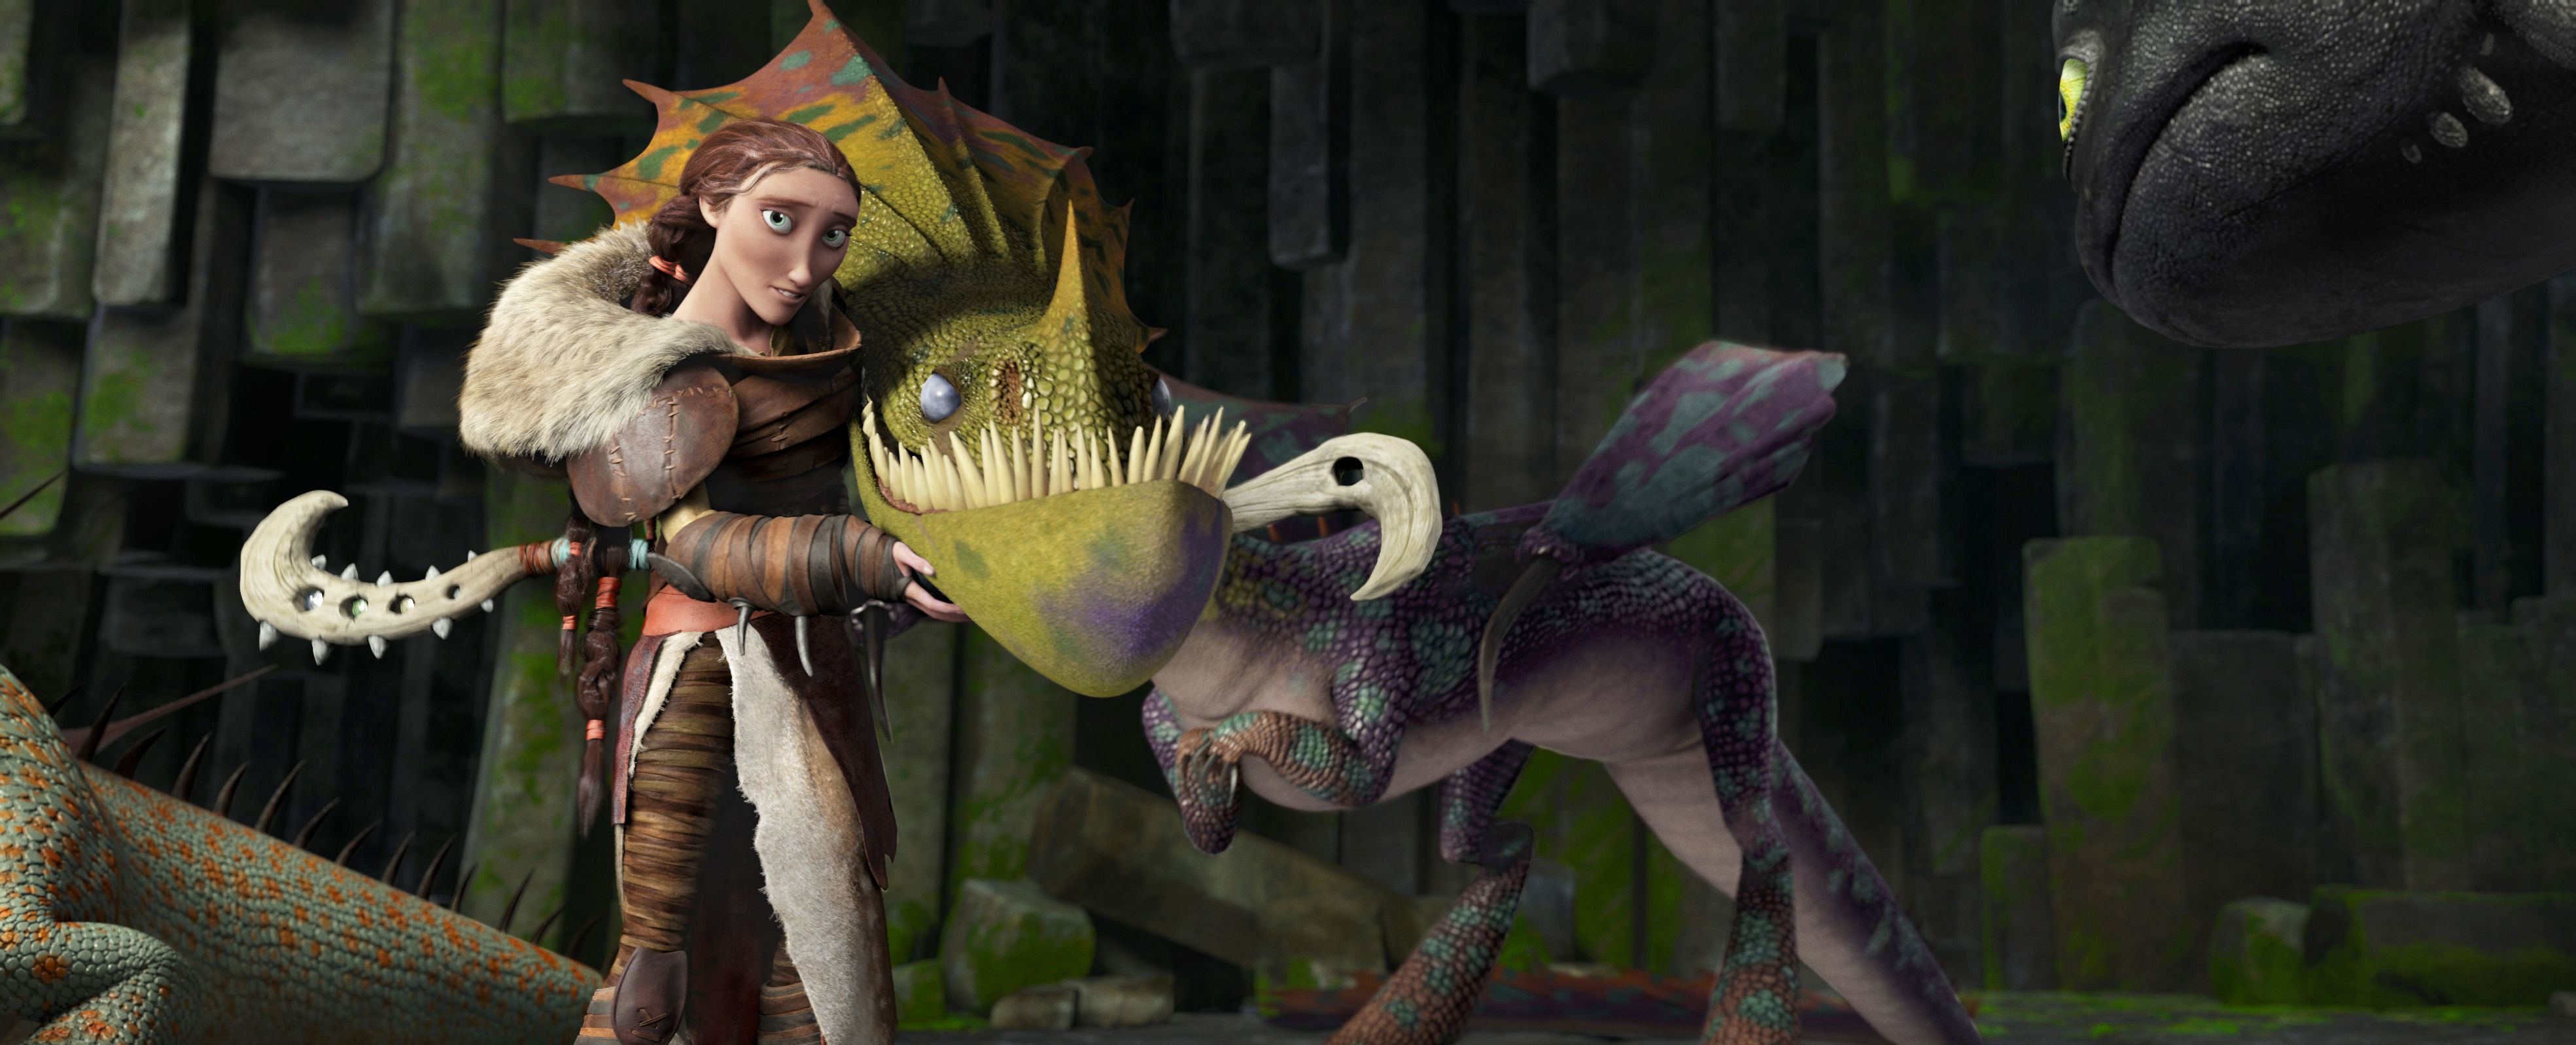 An image from How to Train Your Dragon 2